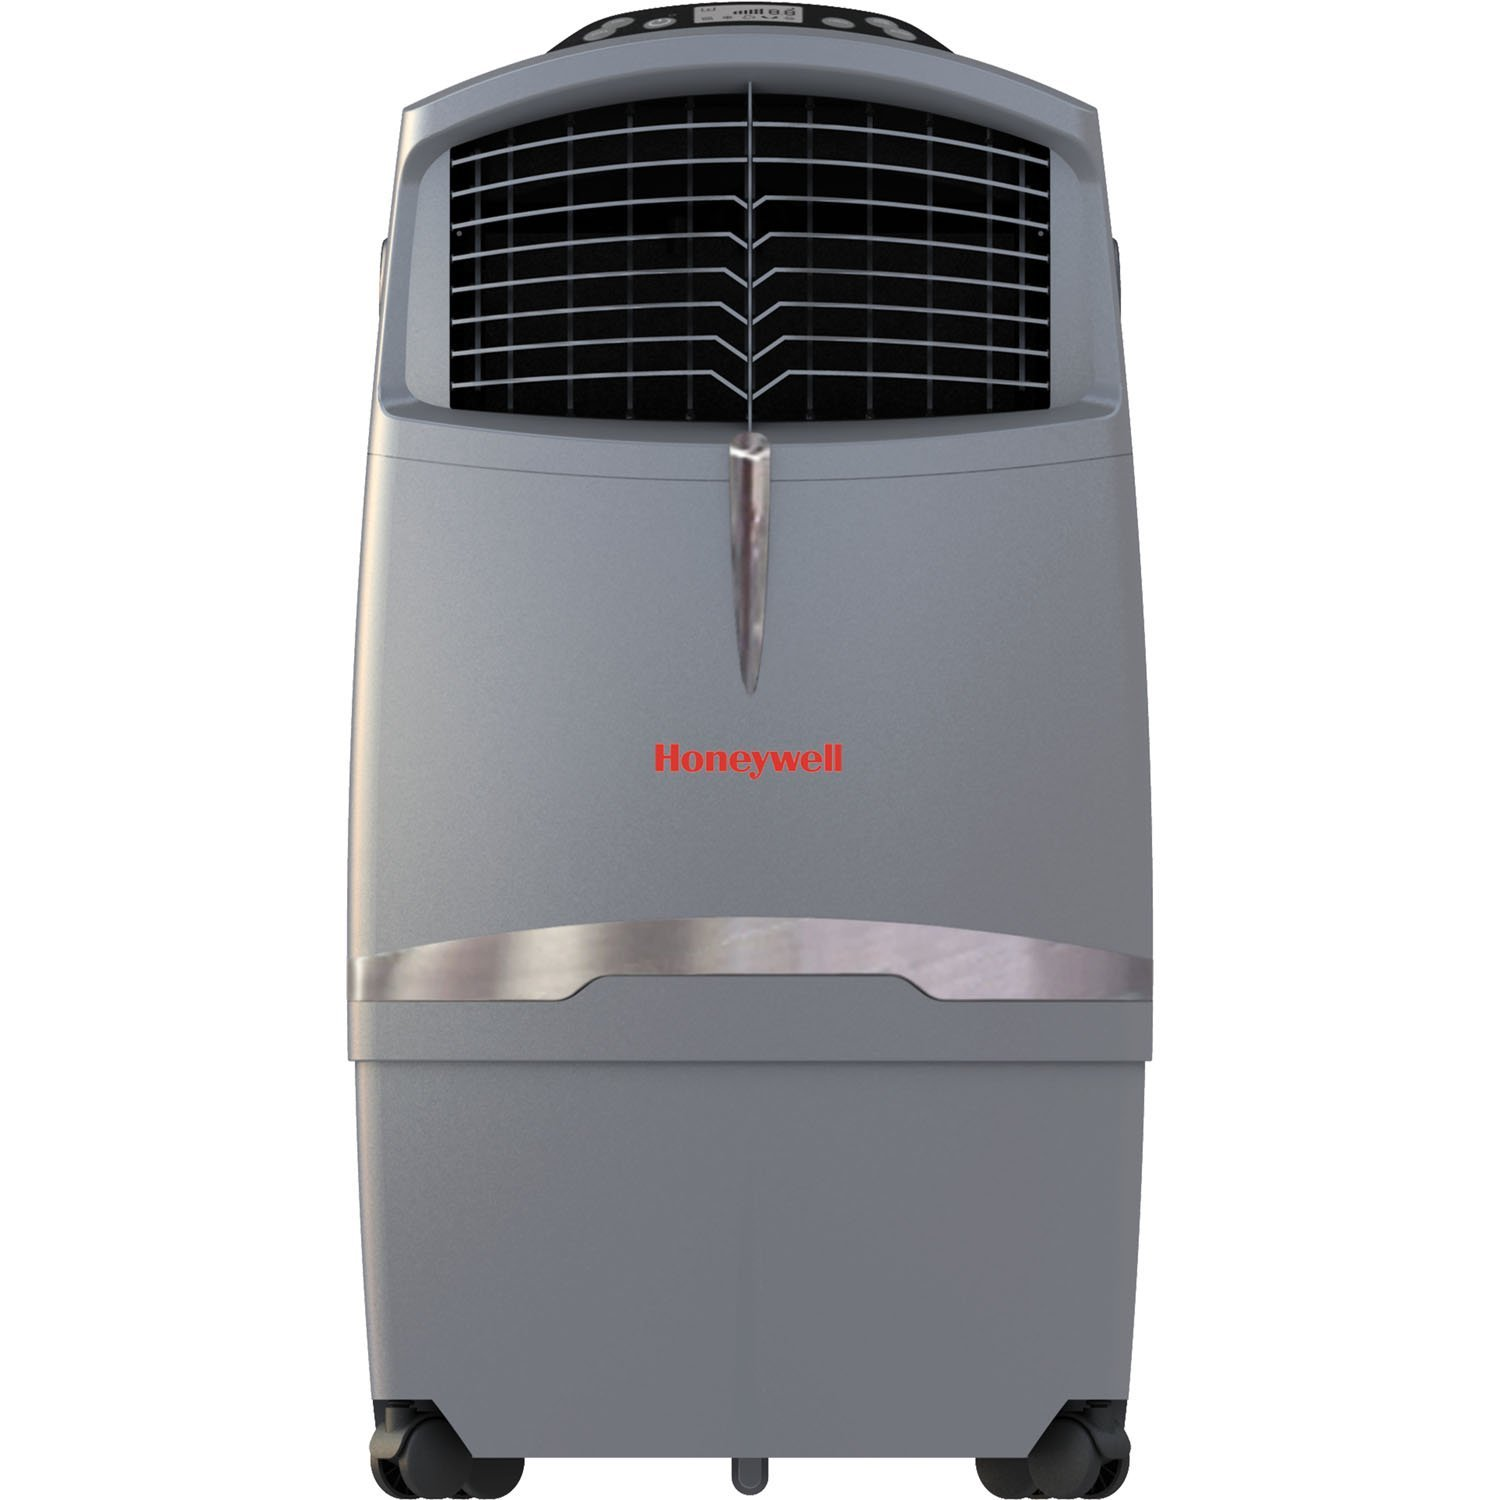 Honeywell CL30XC Front